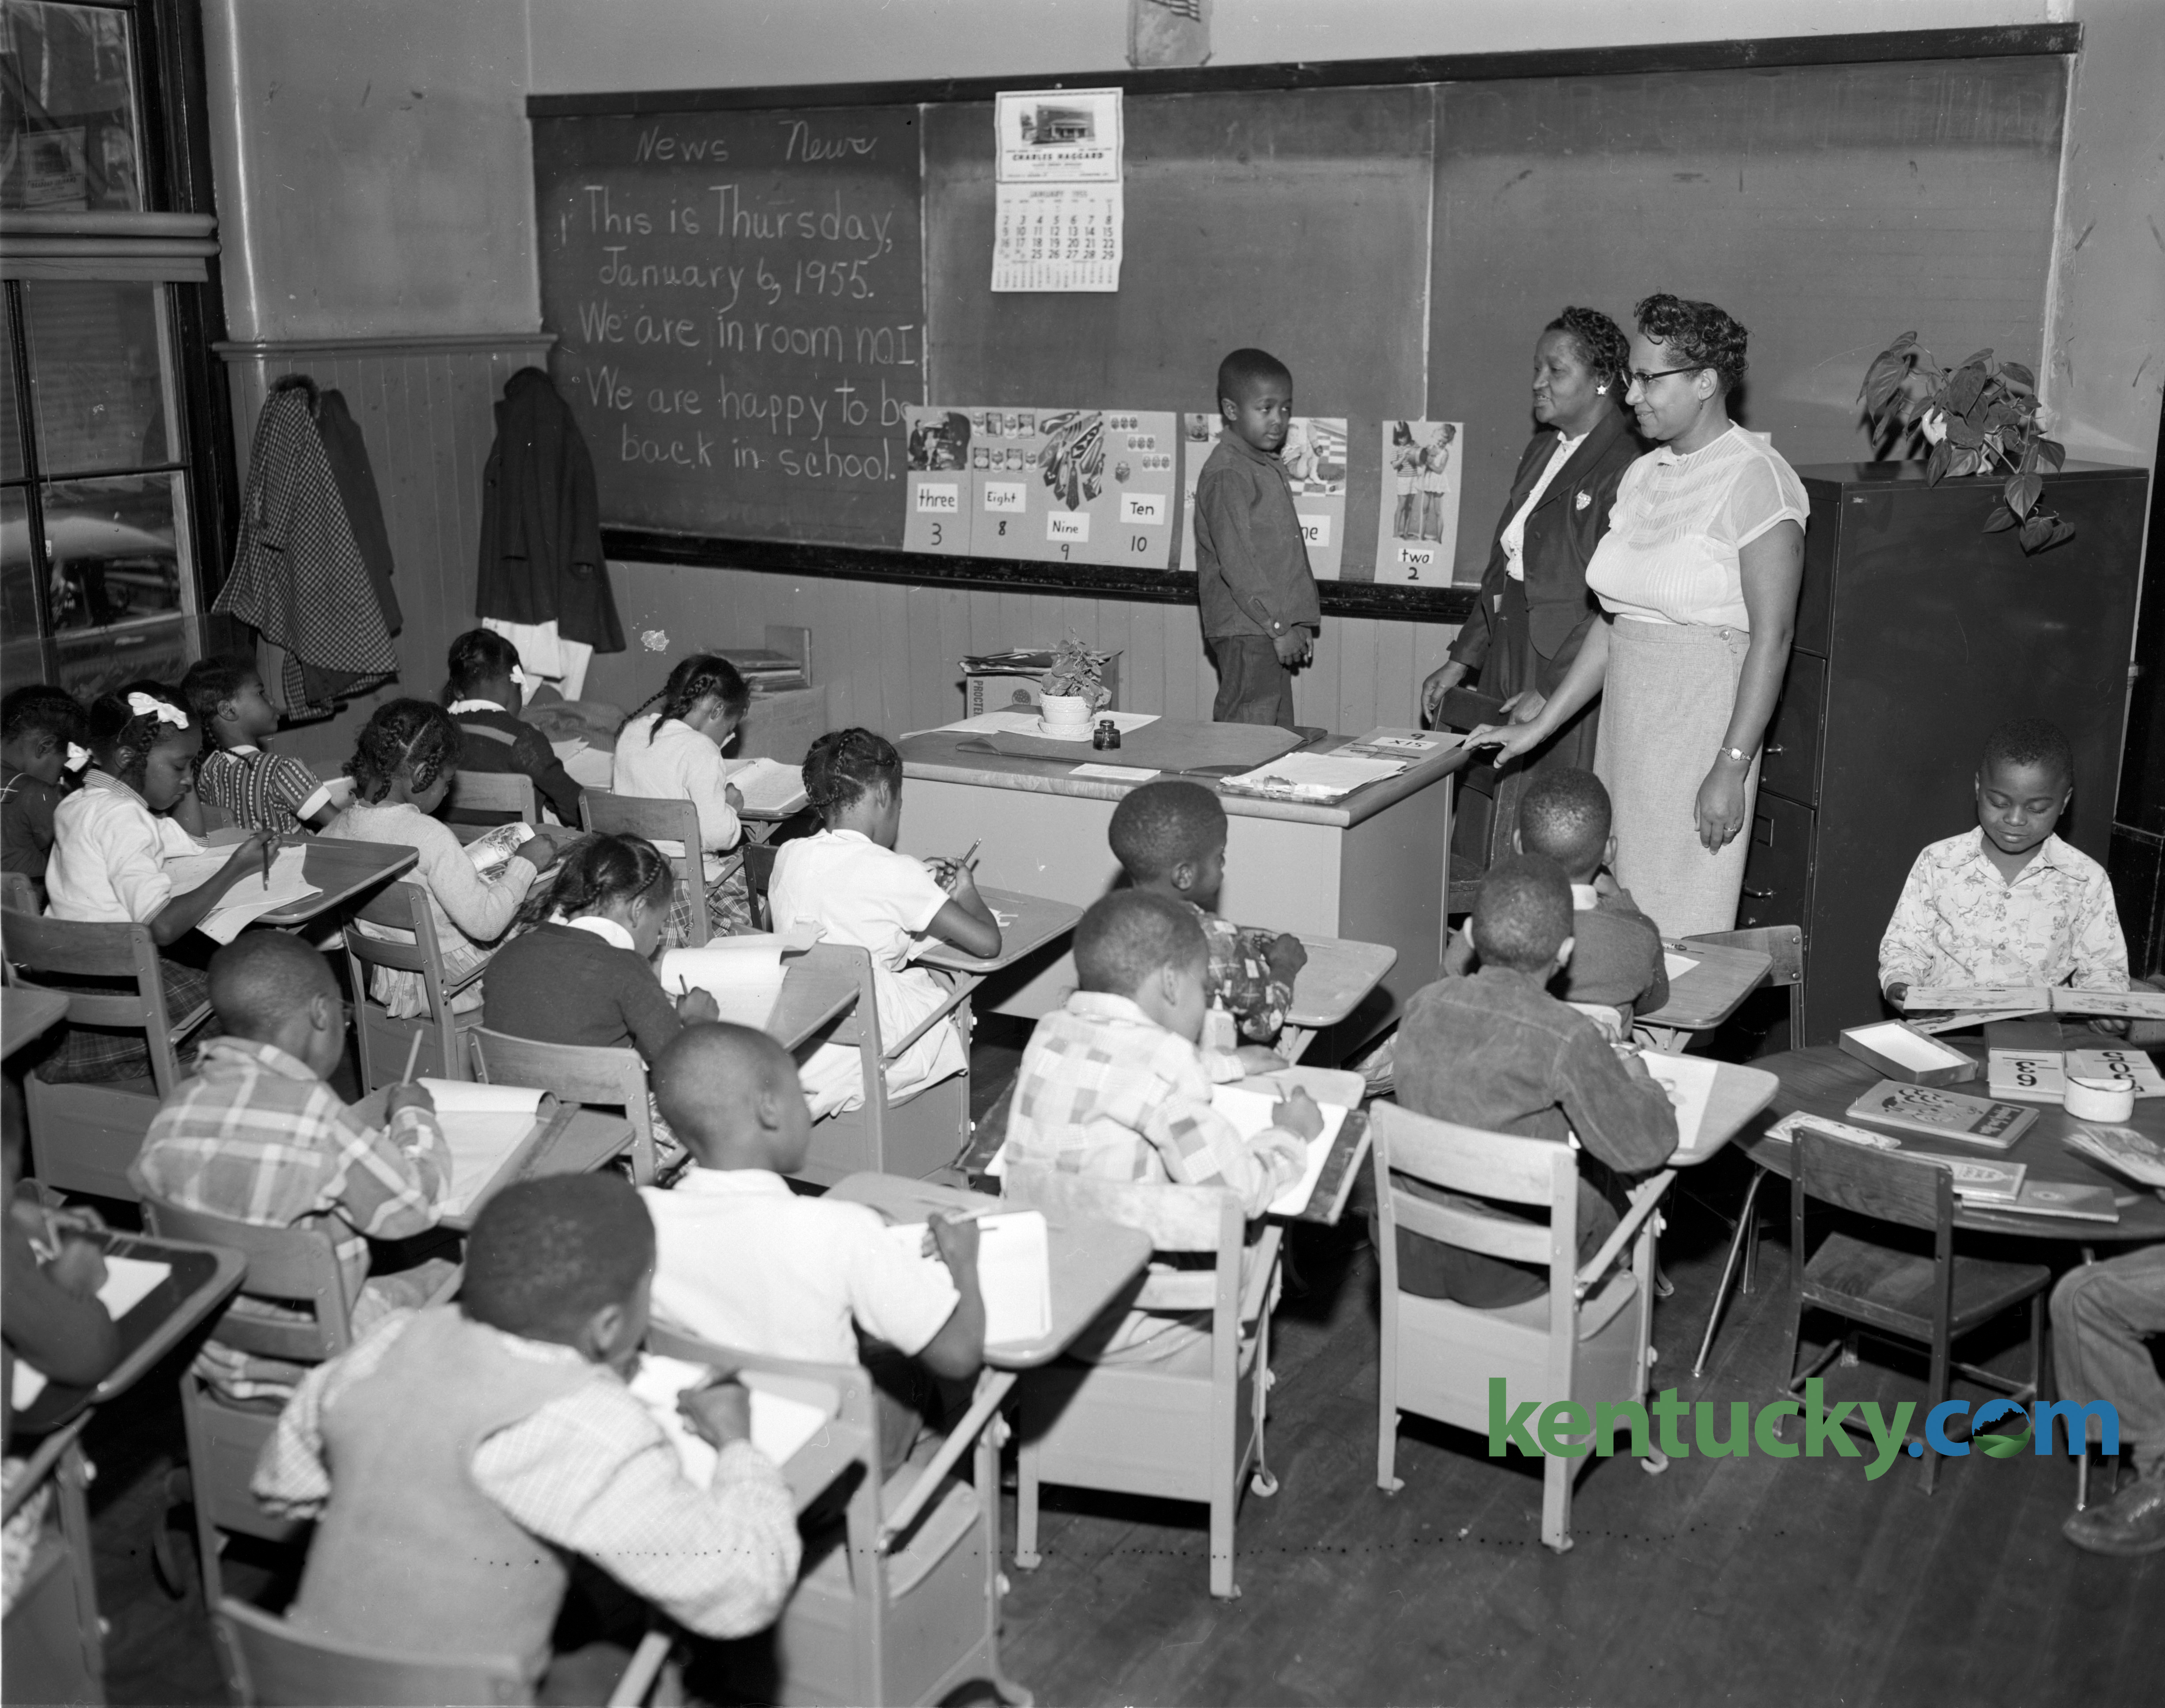 douglass elementary class moved 1955 kentucky photo archive